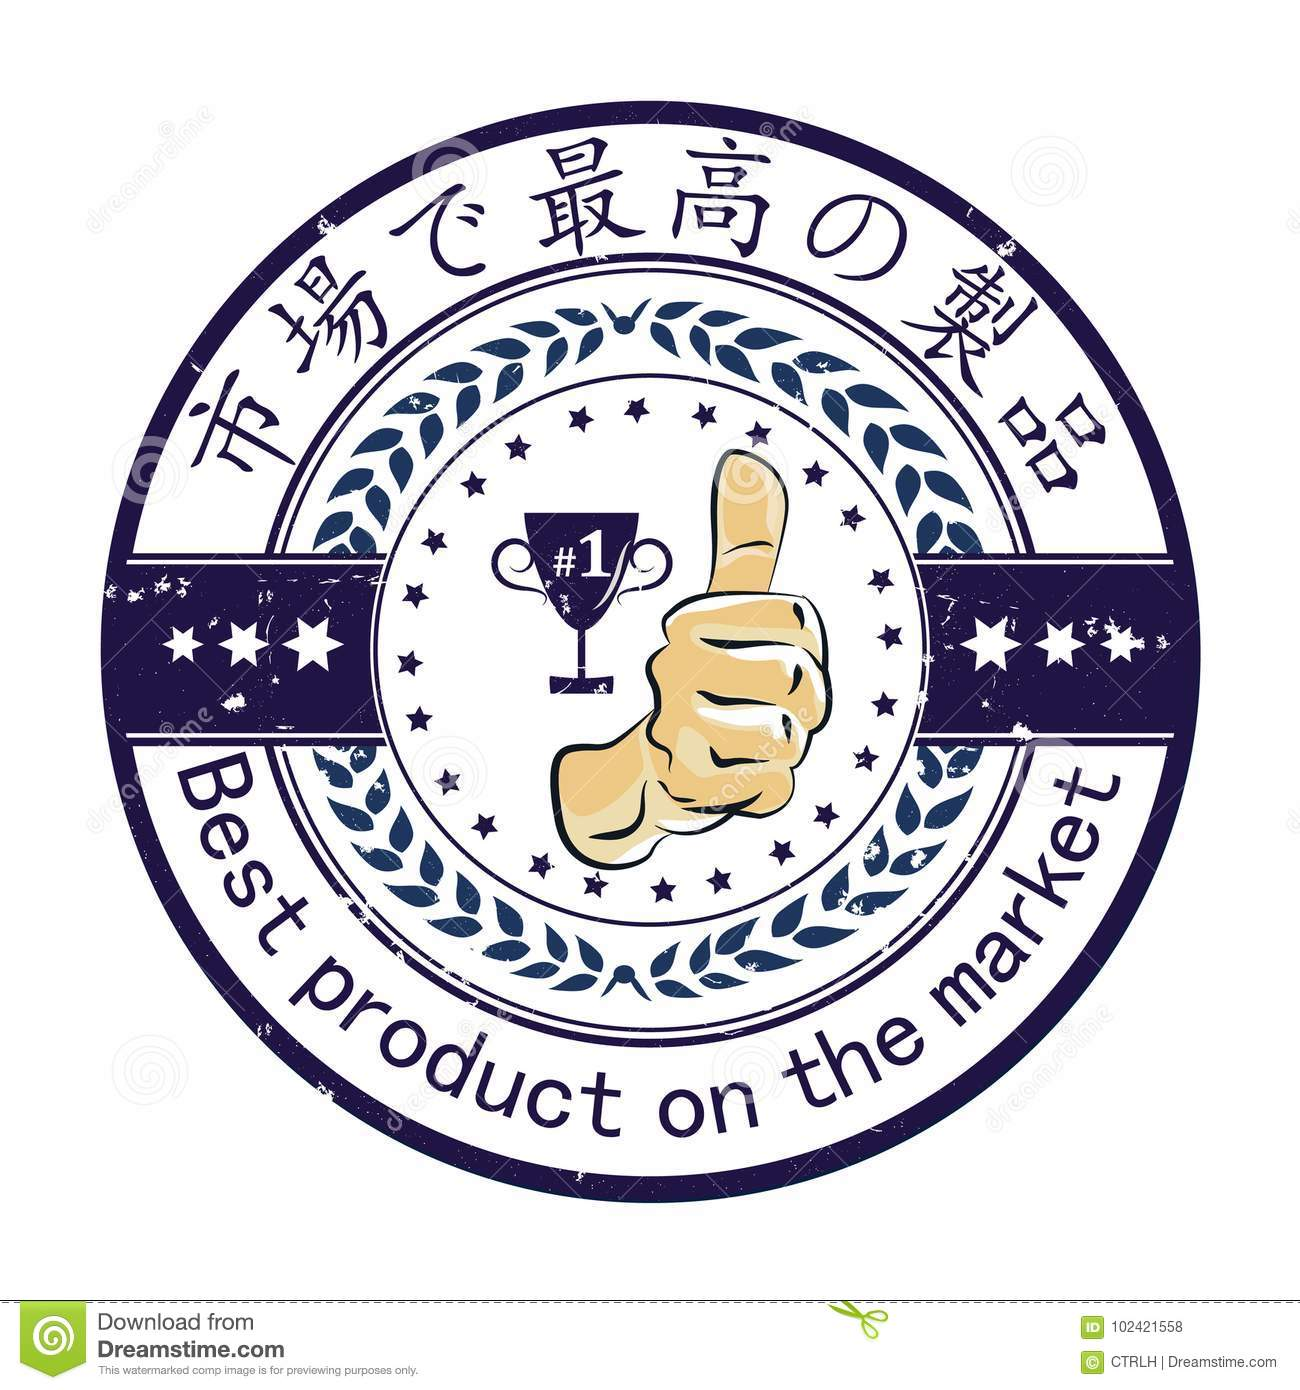 Quality Certification Stamp Designed For The Japanese Retail Market